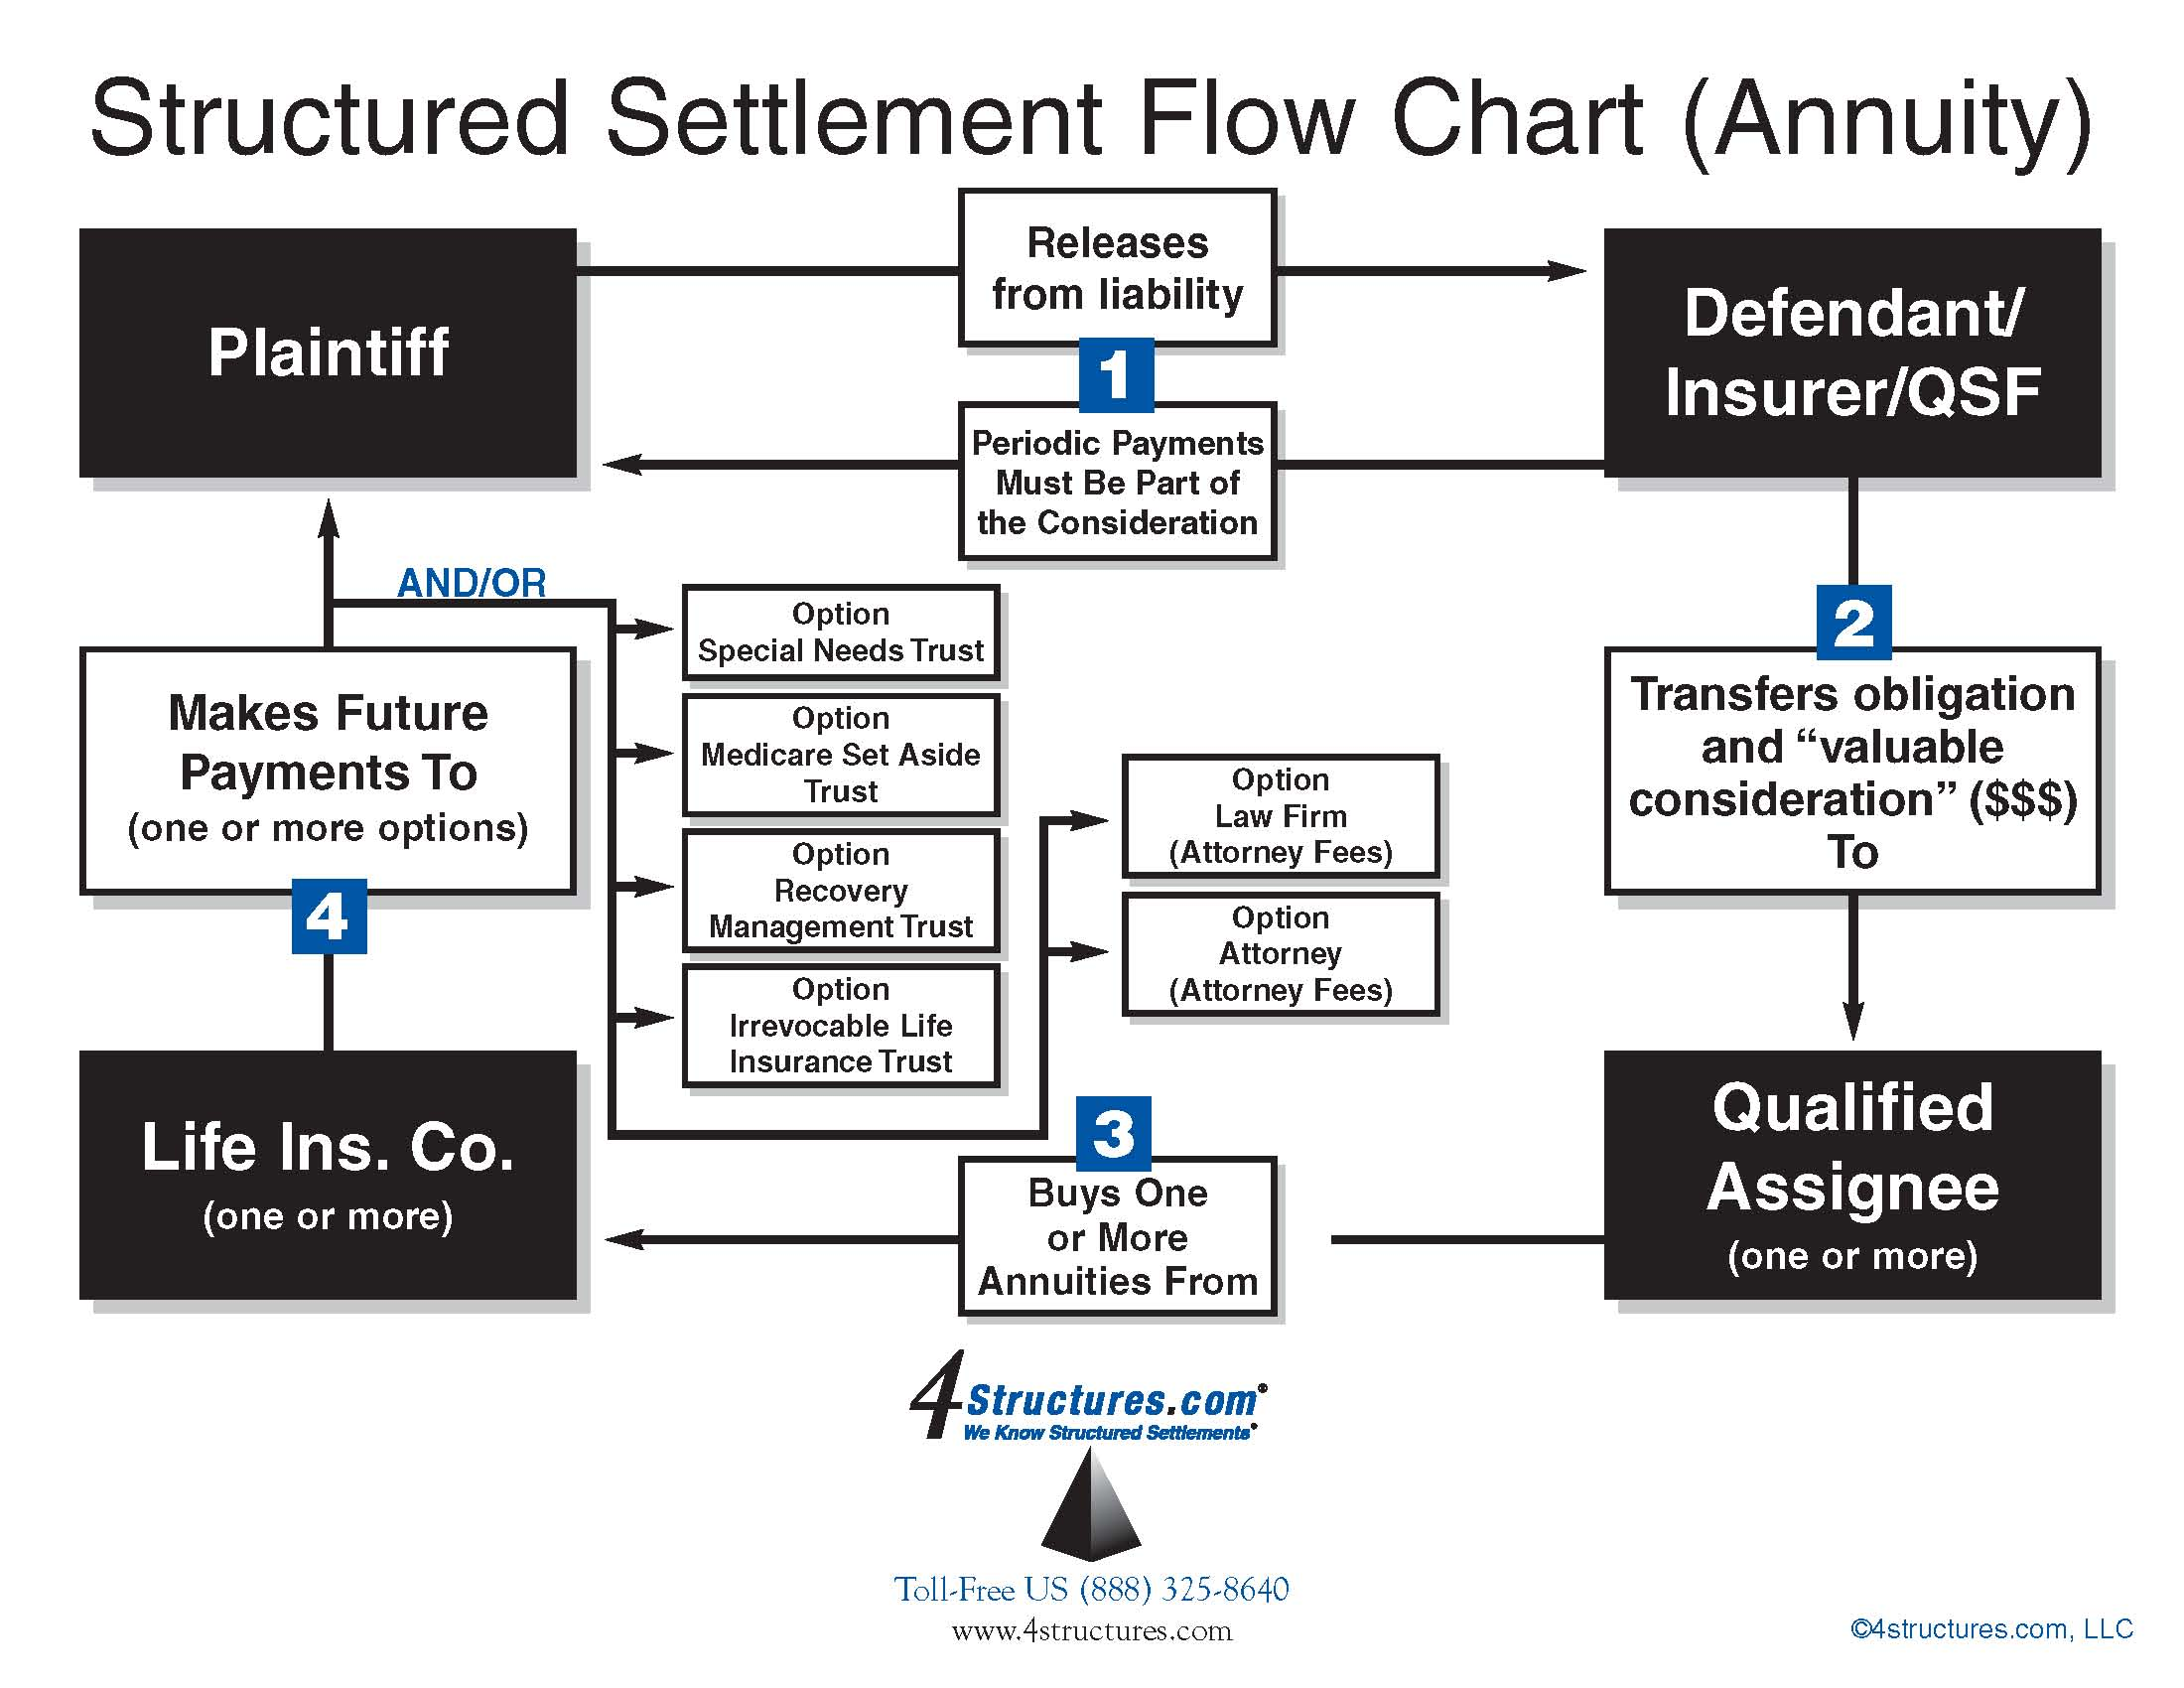 structured settlements 4real blog structured settlements rh structuredsettlements typepad com Application Process Flow Diagram Application Process Flow Diagram